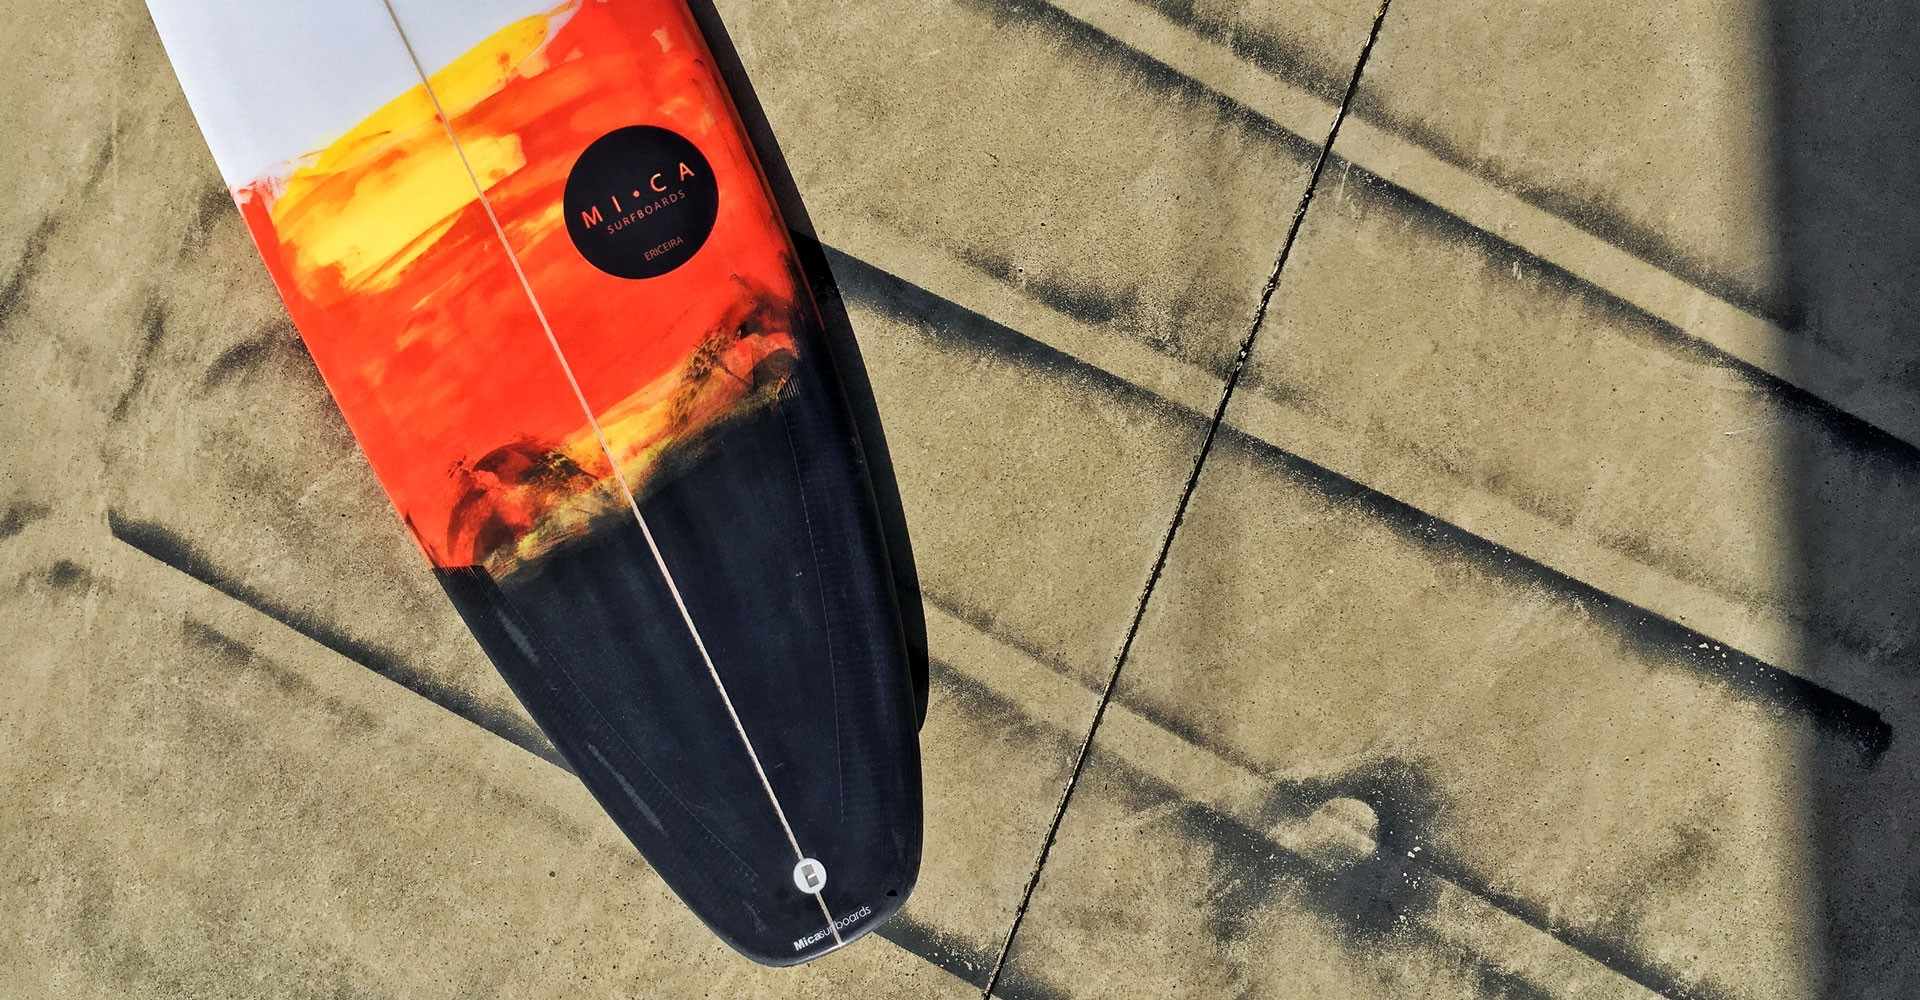 The S.Model is a fast and versatile high performance shortboard.